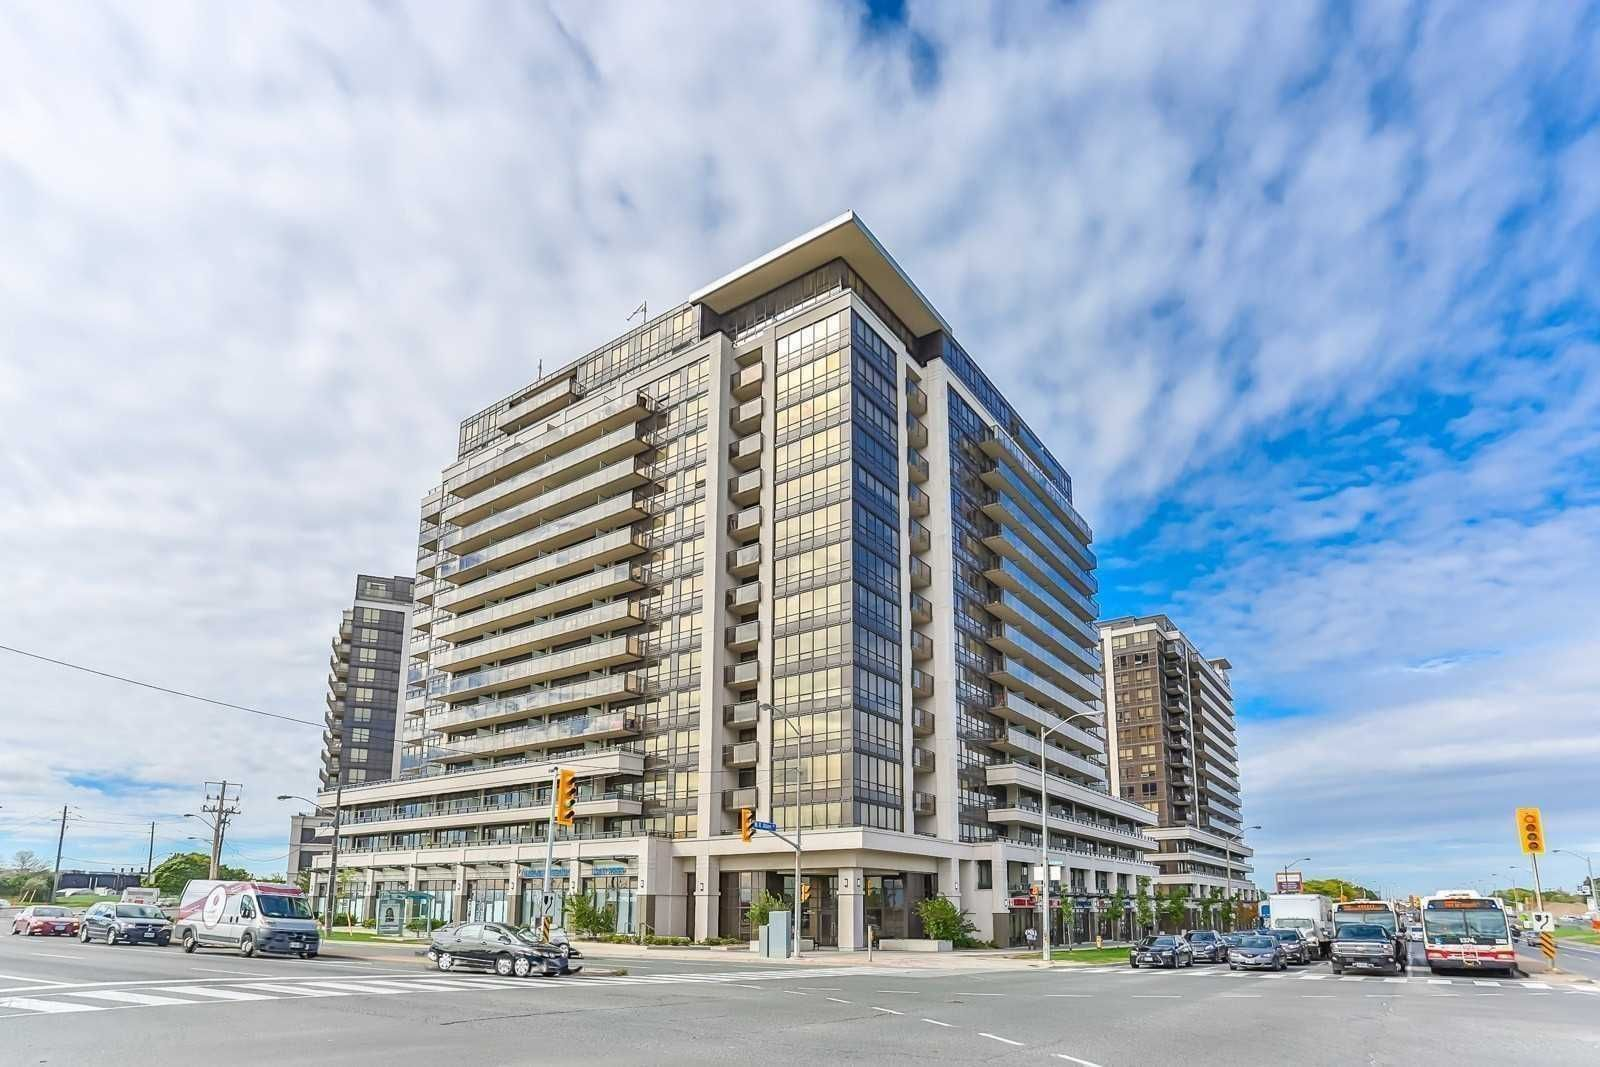 1070 Sheppard Ave W, unit 1411 for rent in York University Heights - image #1